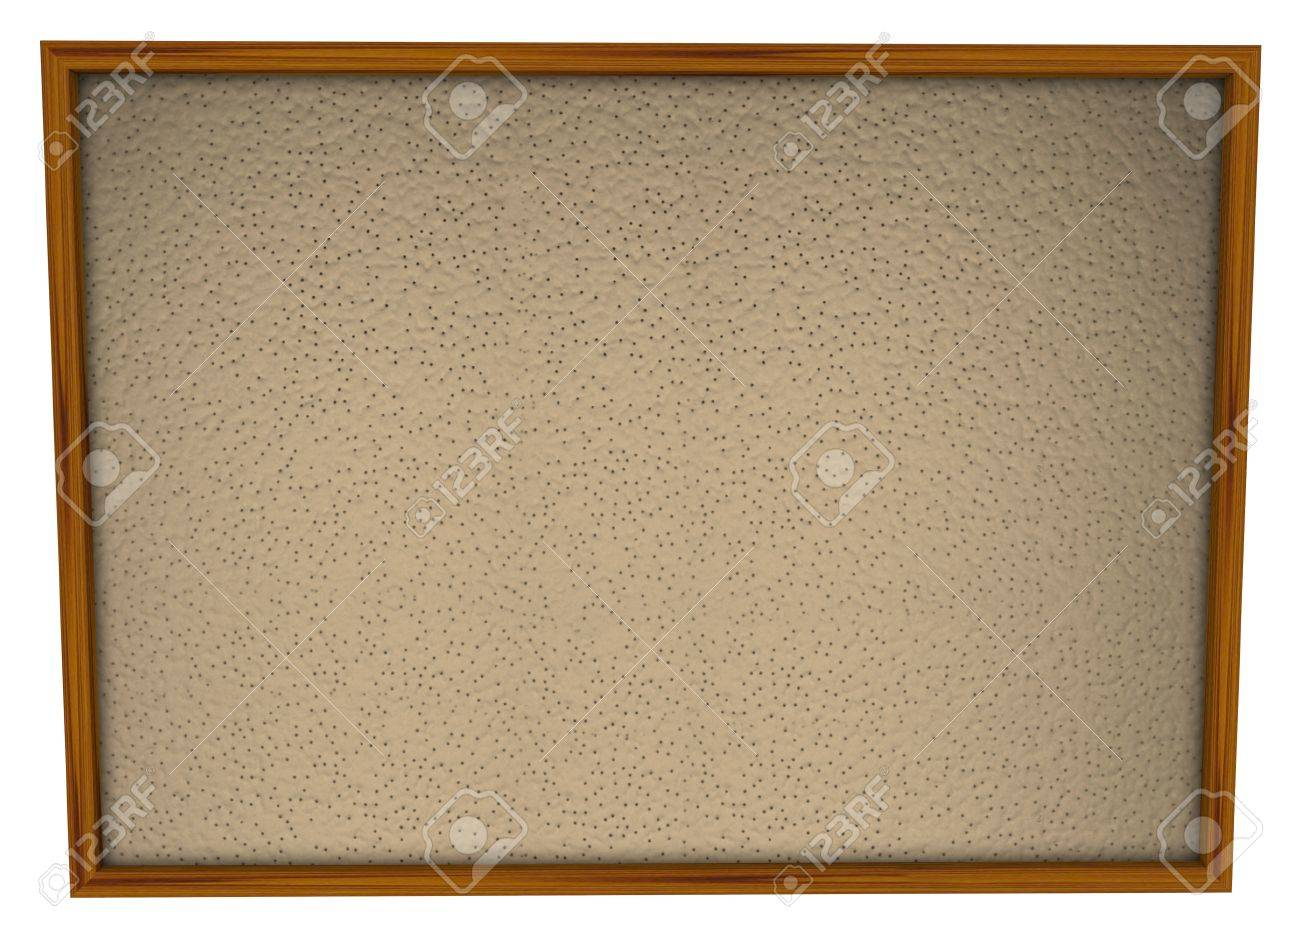 A blank bulletin board in wood frame and lots of space for you a blank bulletin board in wood frame and lots of space for you to place pictures jeuxipadfo Choice Image